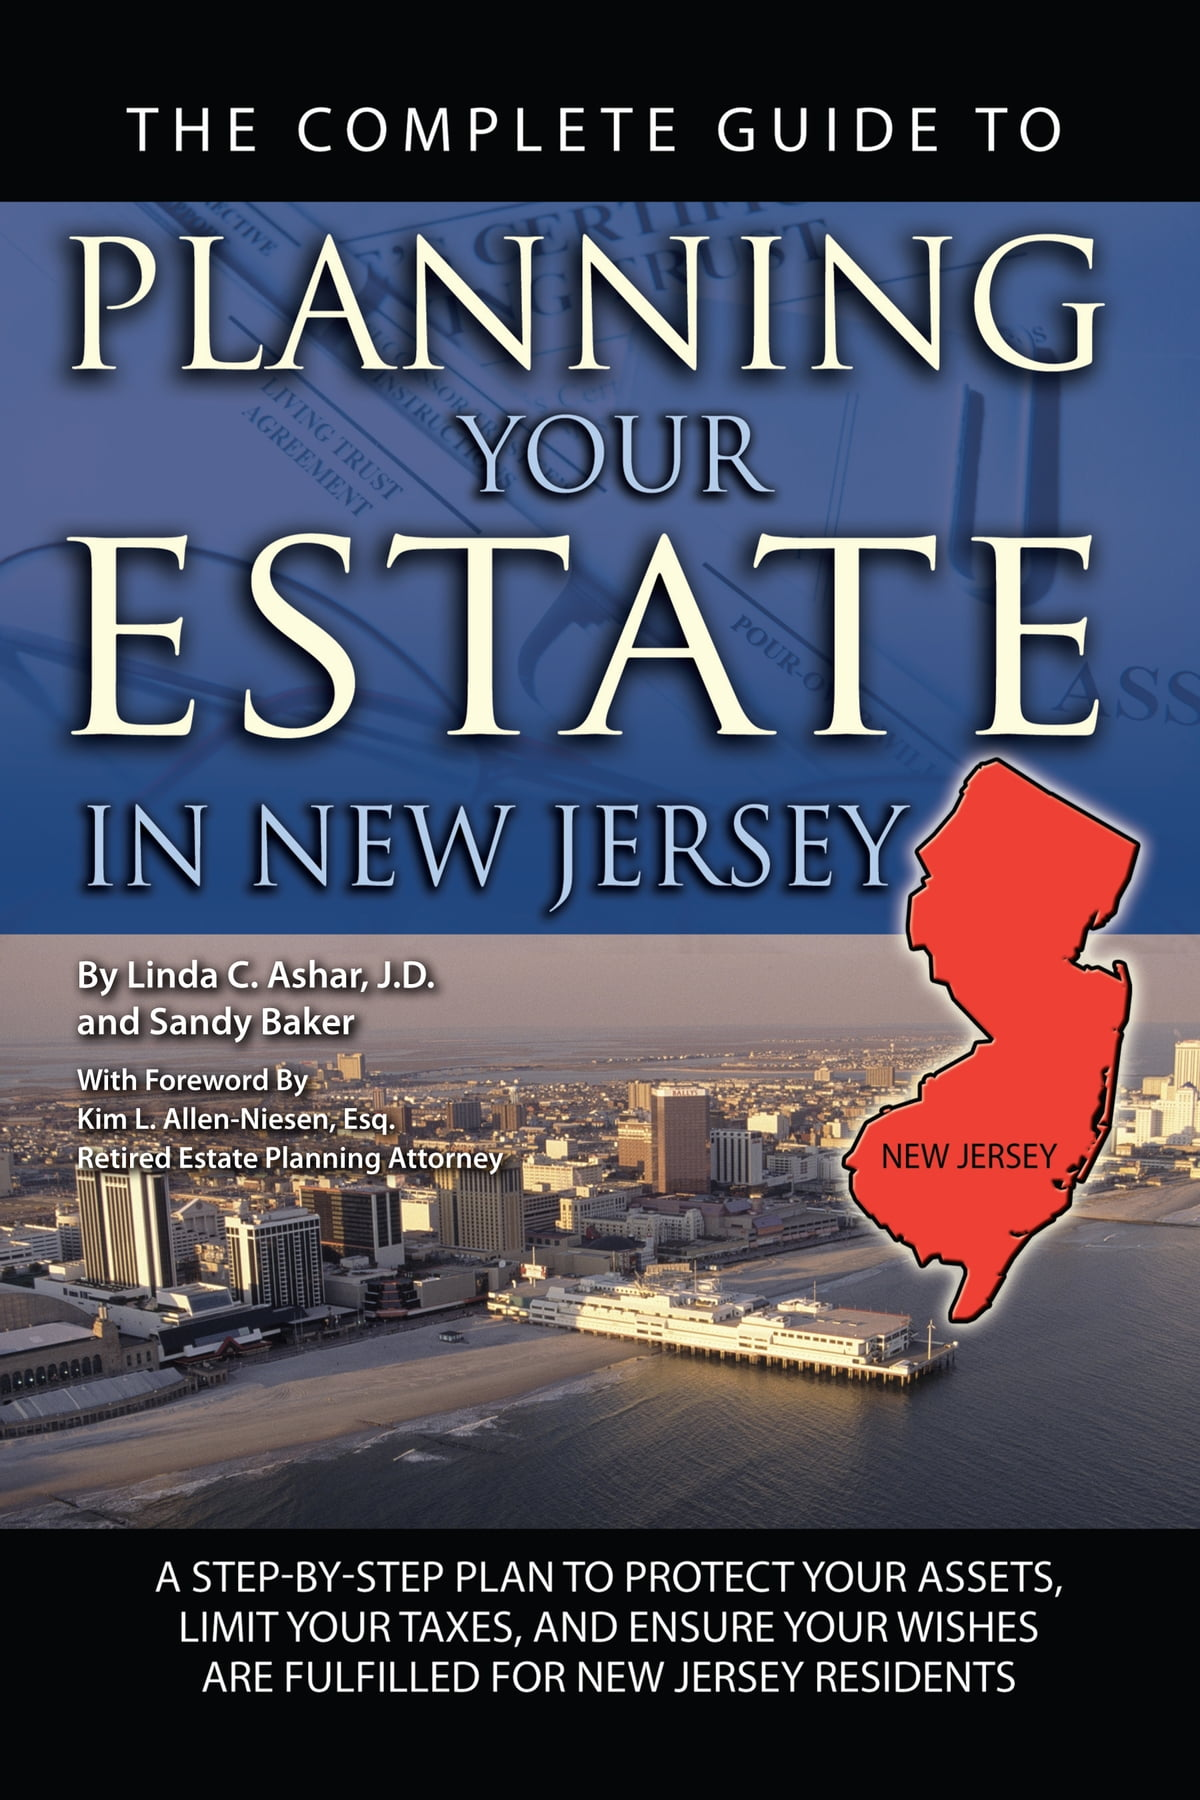 The Complete Guide To Planning Your Estate In New Jersey A Step By Step Plan To Protect Your